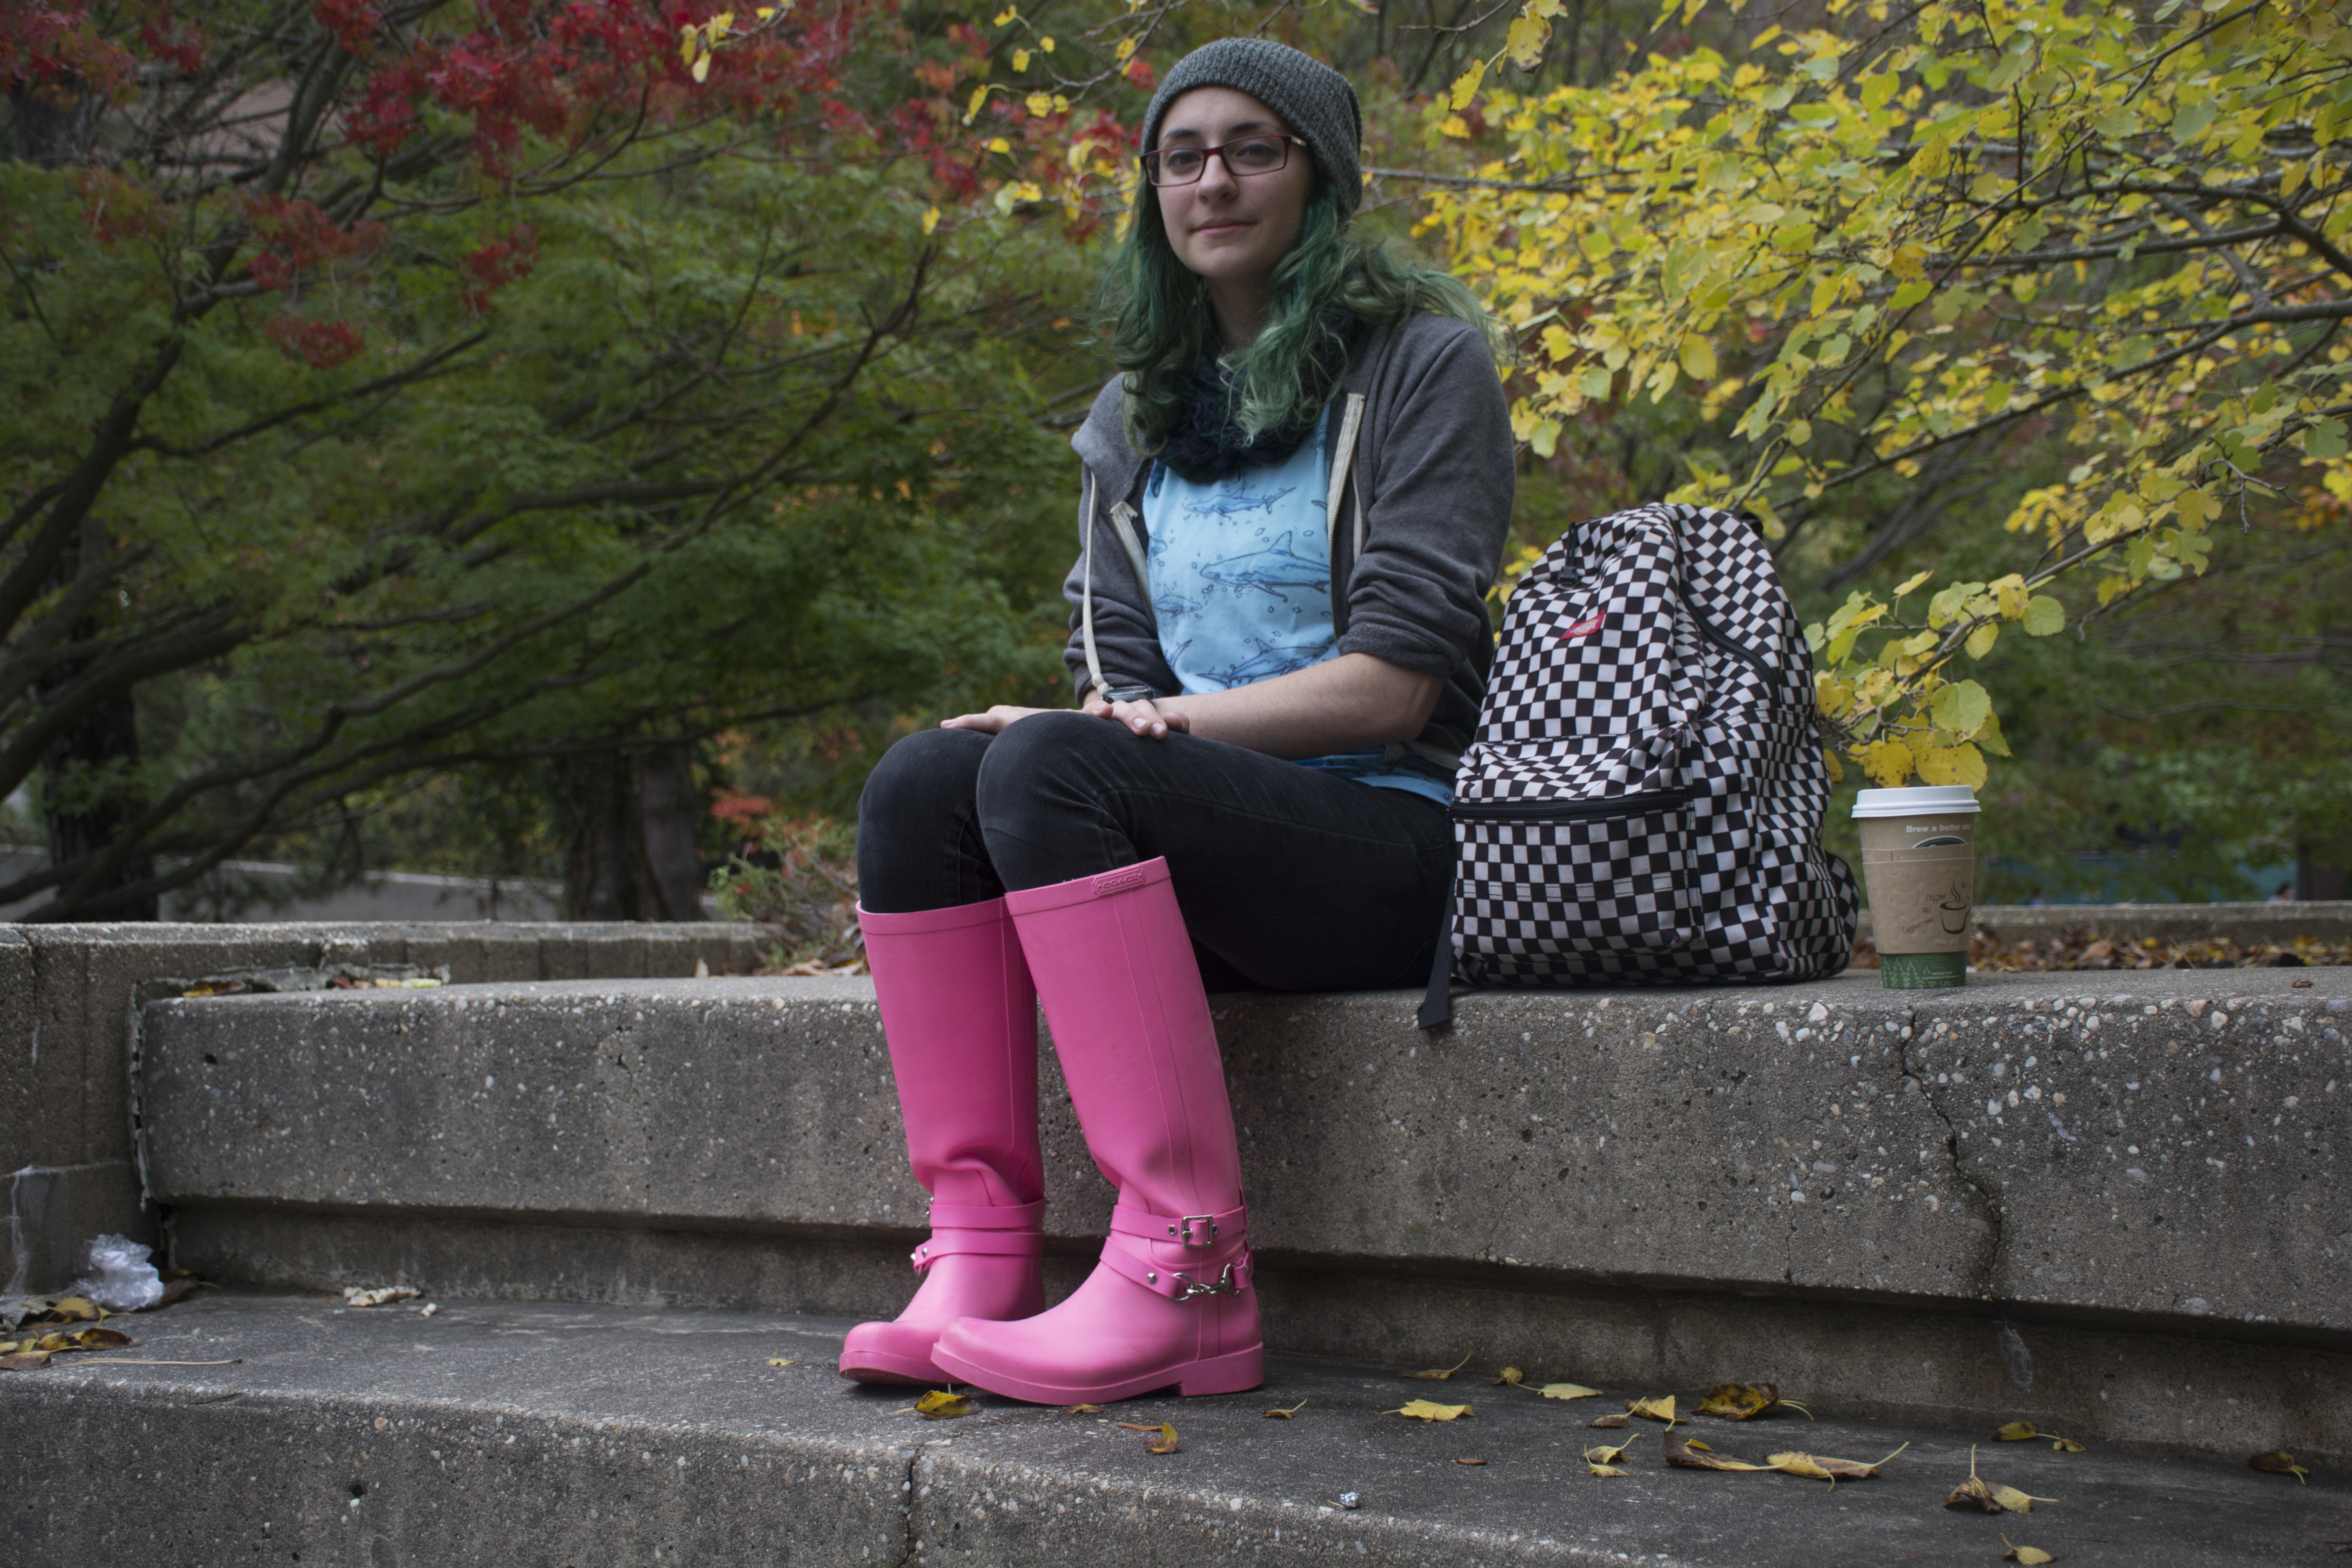 """Jennifer Brandstadter, a junior chemistry major, poses for a photo on Thursday, Oct. 16, 2014. """"I like mixing unconventional patterns"""" and clothing that is 'visually interesting,'"""" Brandstadter said. (MEGAN MILLER / THE STATESMAN)"""